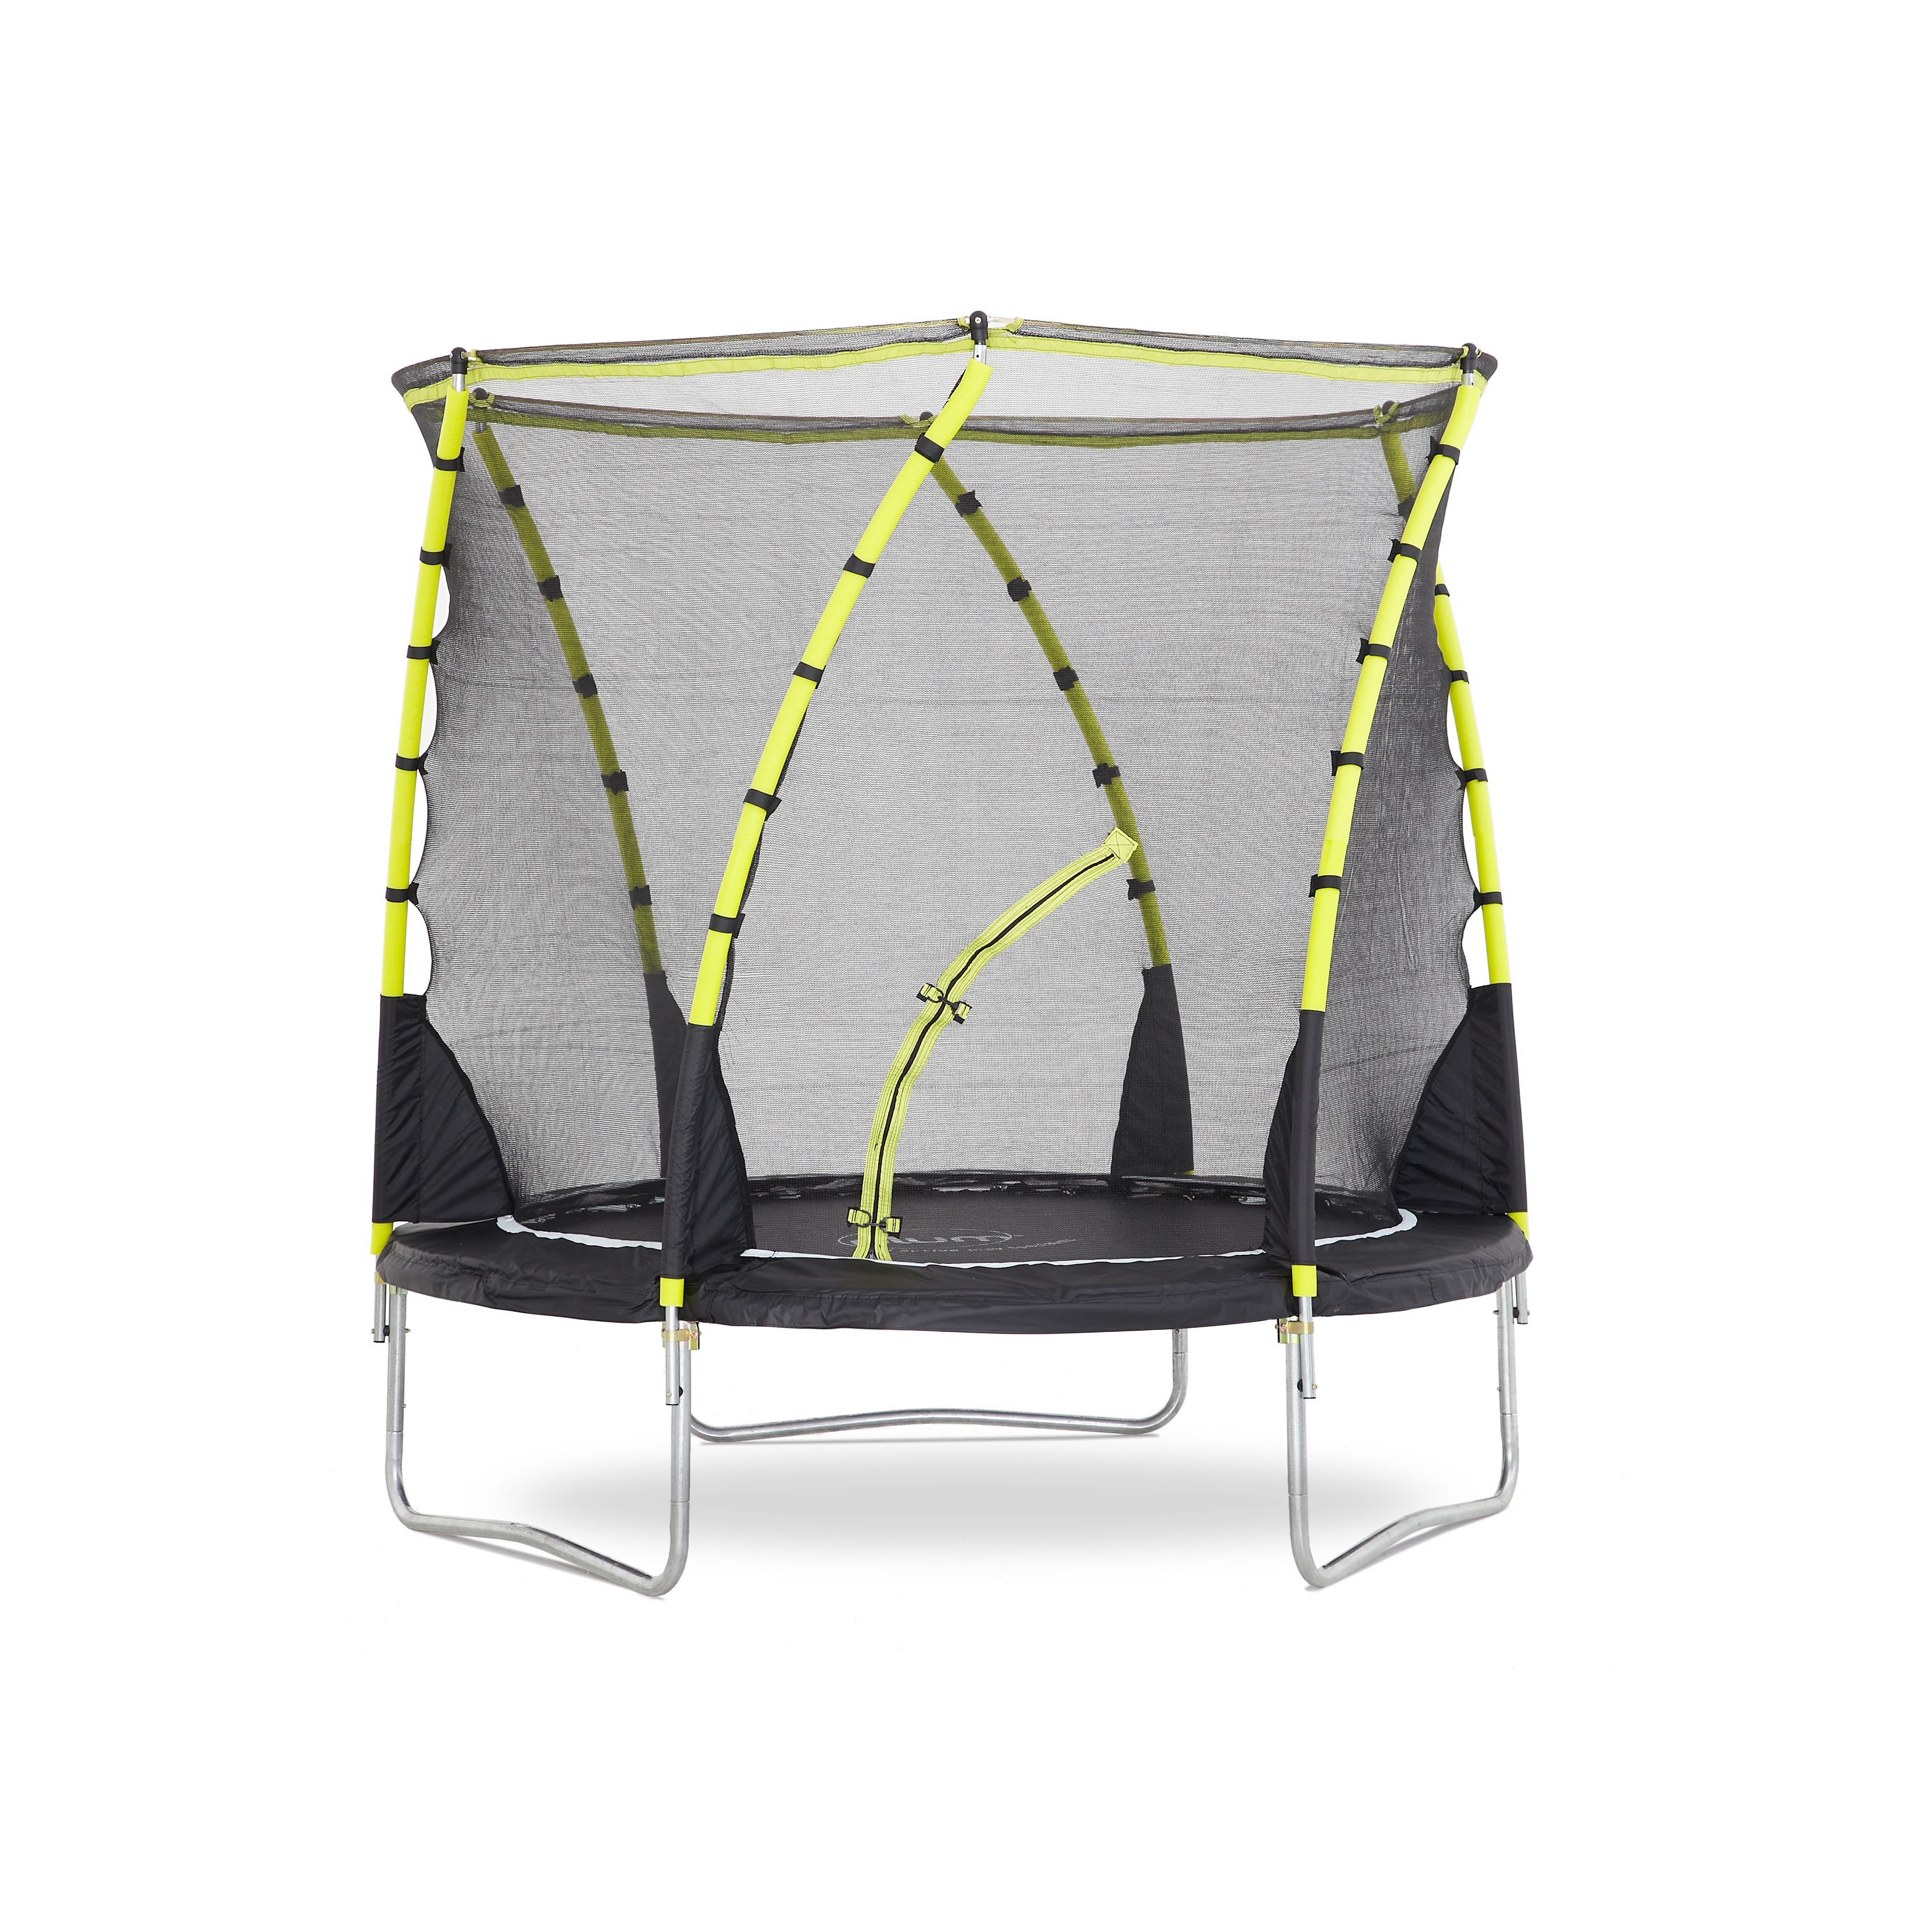 Trampoline Springs B Q: Plum Whirlwind Black & Green 8 Ft Trampoline & Enclosure